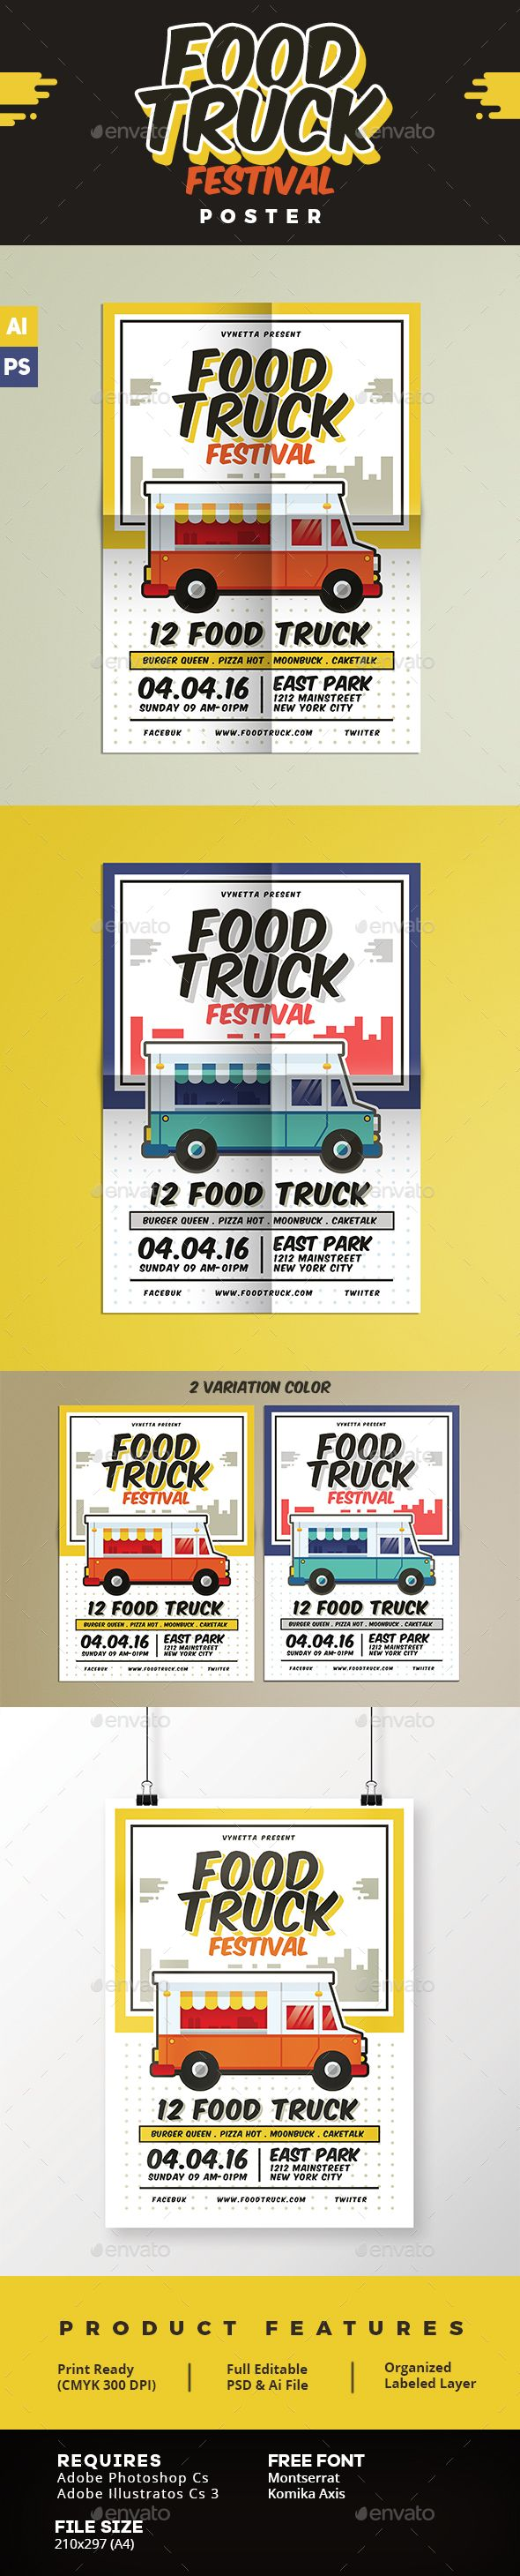 Food Truck Festival Poster Template PSD. Download here: http://graphicriver.net/item/food-truck-festival-poster/15778461?ref=ksioks